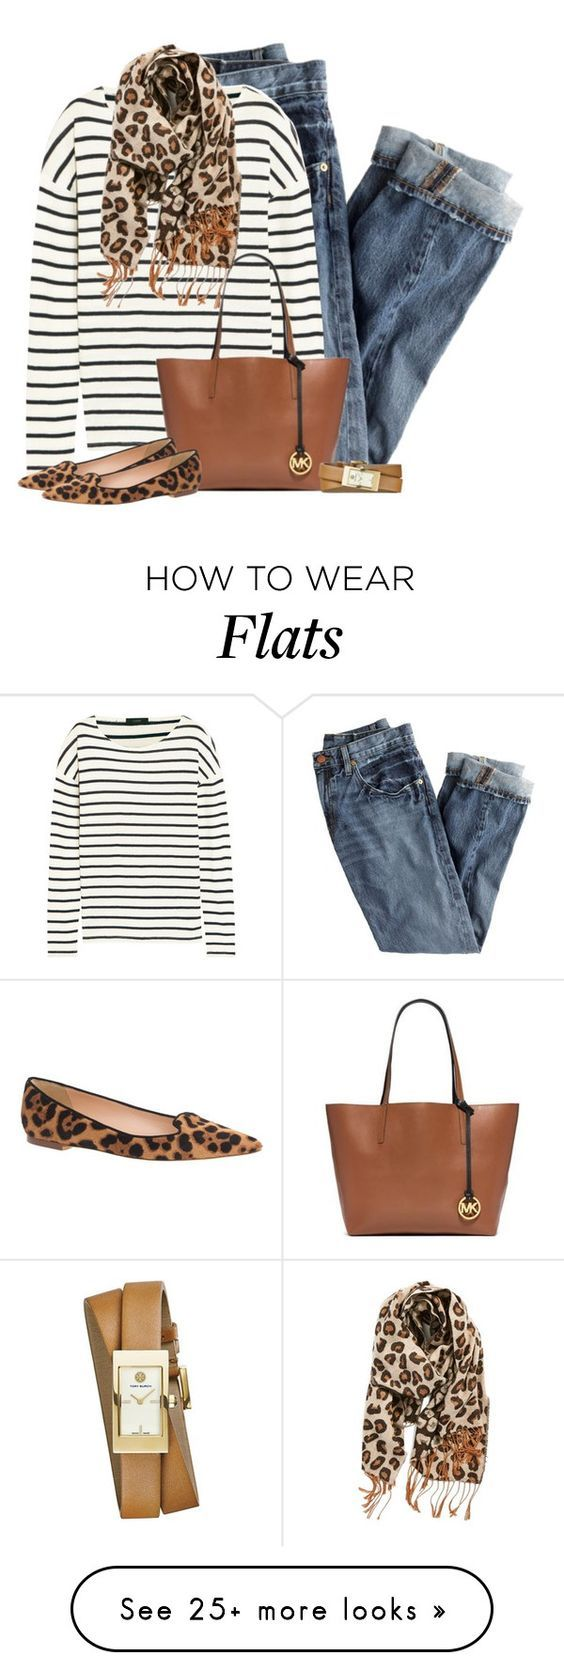 """Blended Prints"" by cindycook10 on Polyvore that includes J.Crew, Michael Kors, Tory Burch and BP."